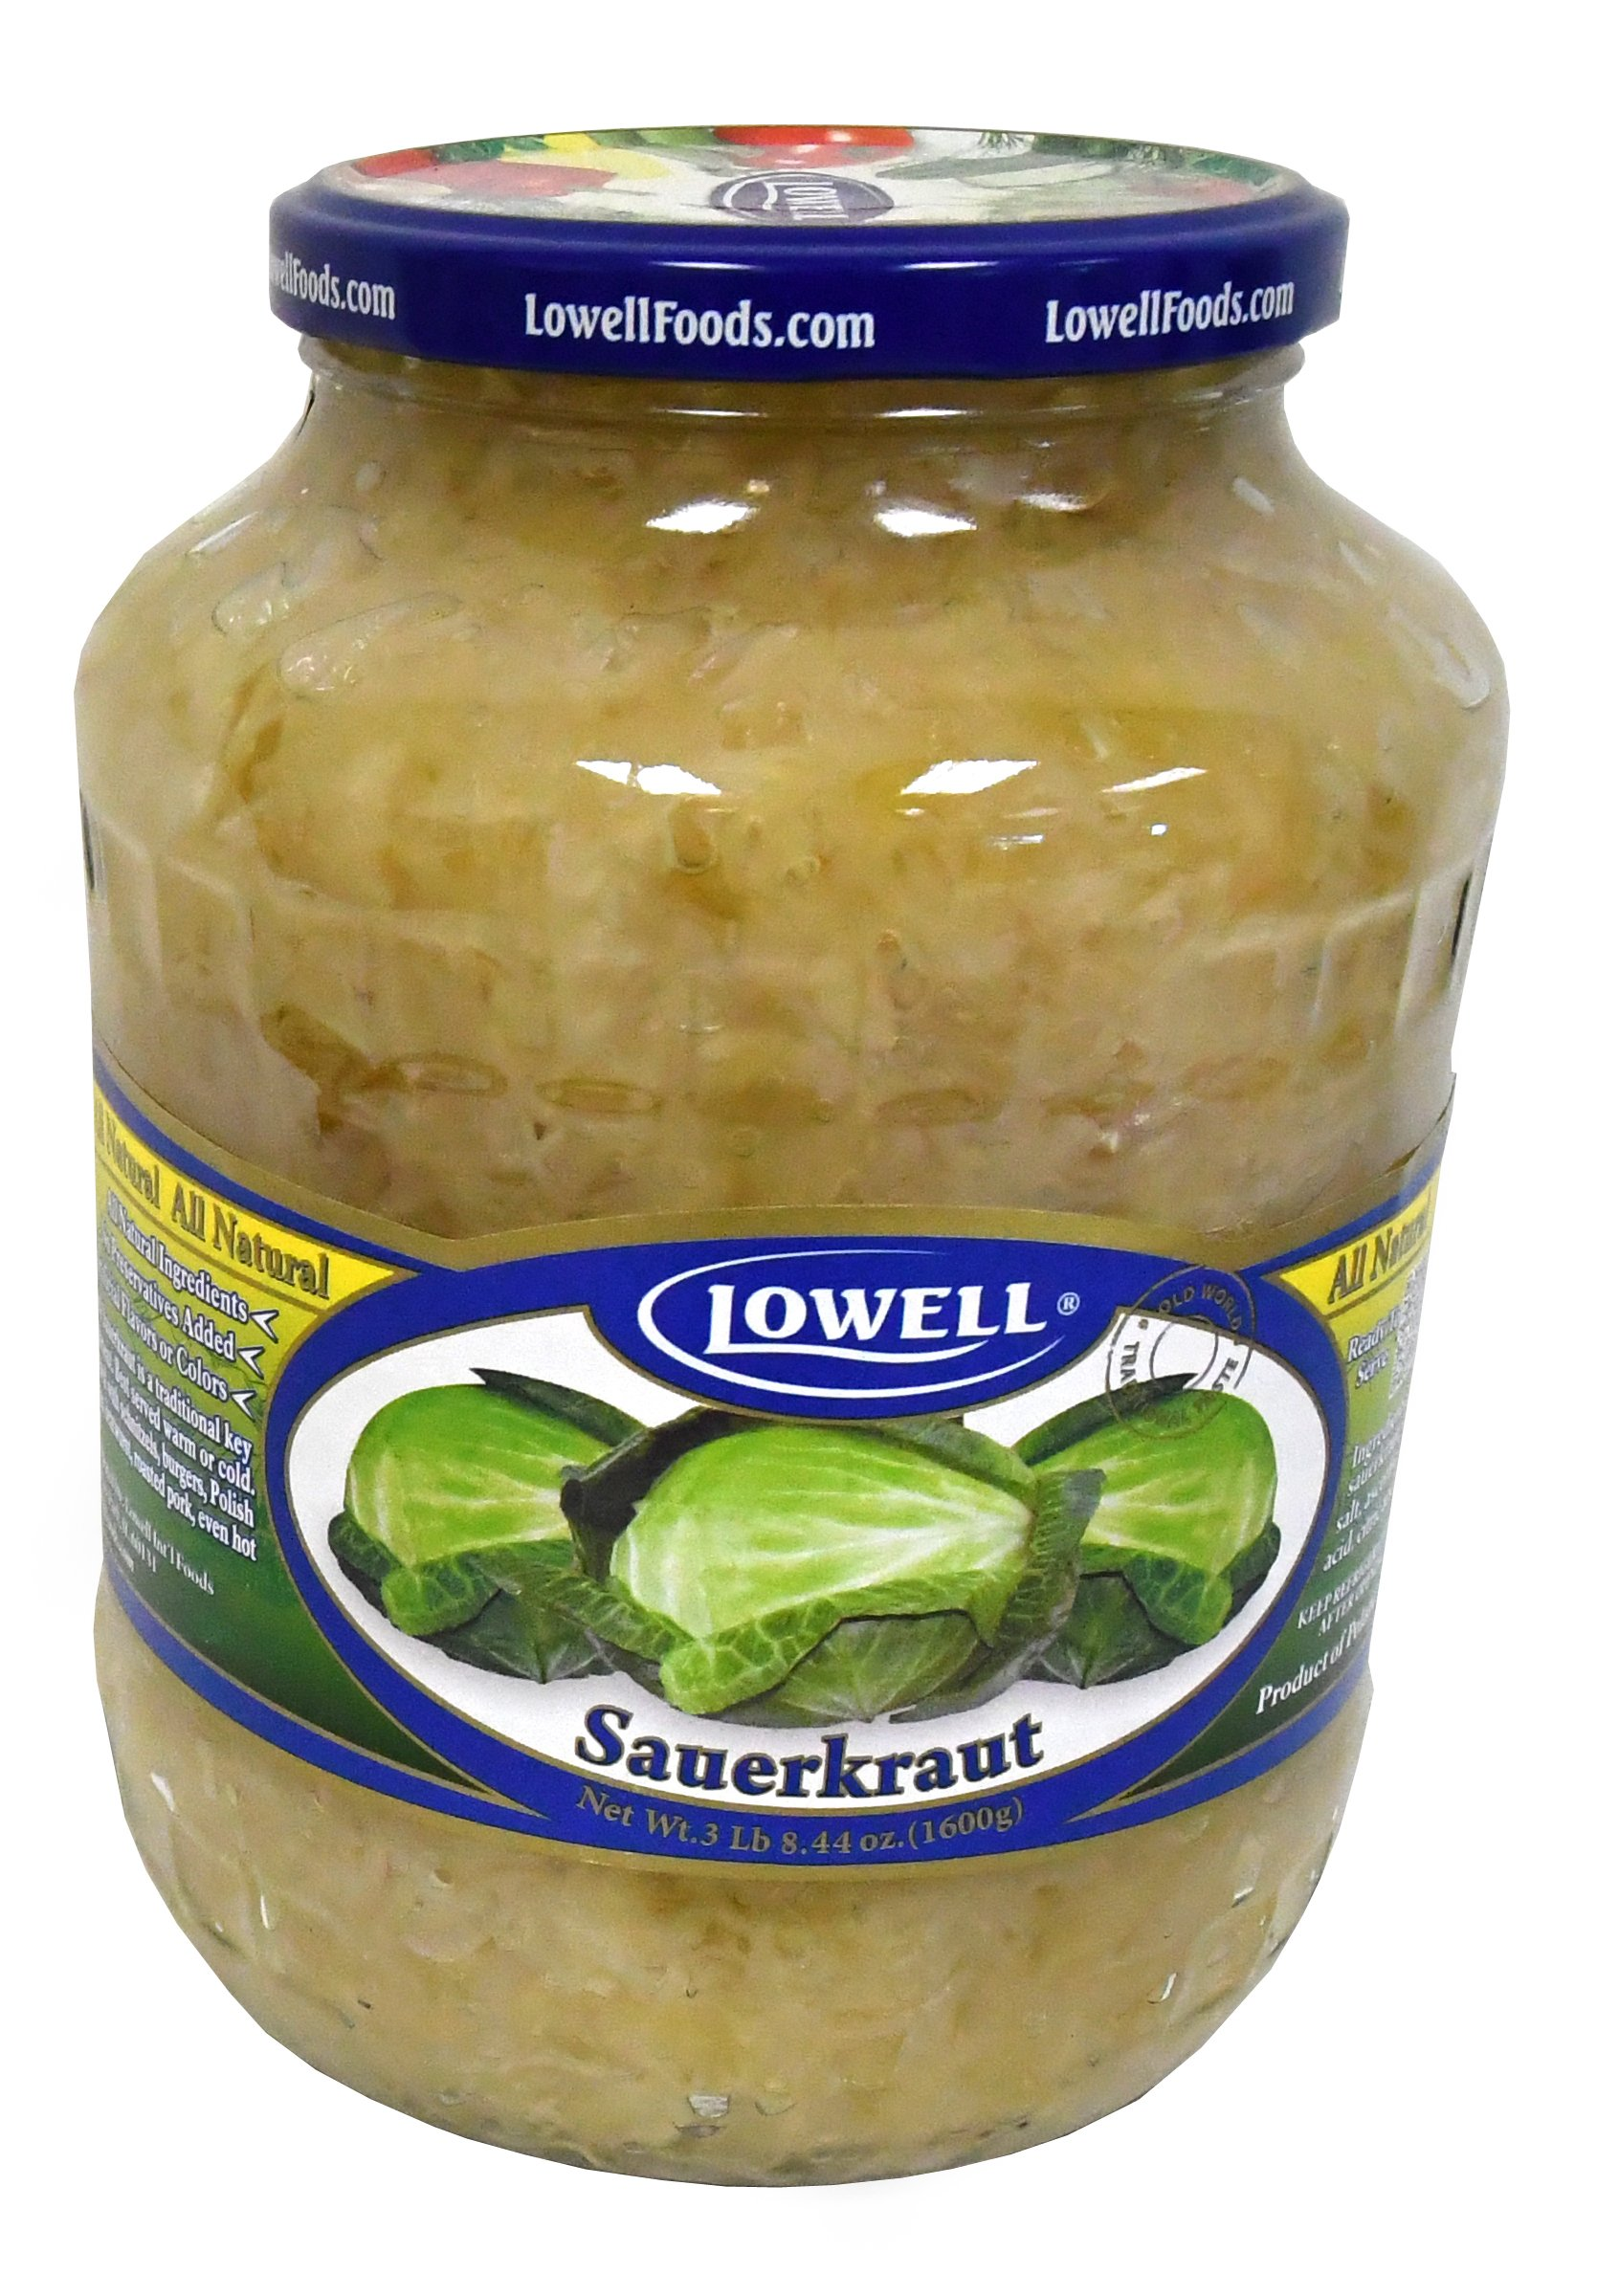 Lowell Foods Sauerkraut 3 Pounds and 8.44 Ounces (1600 Grams) Pack of Two